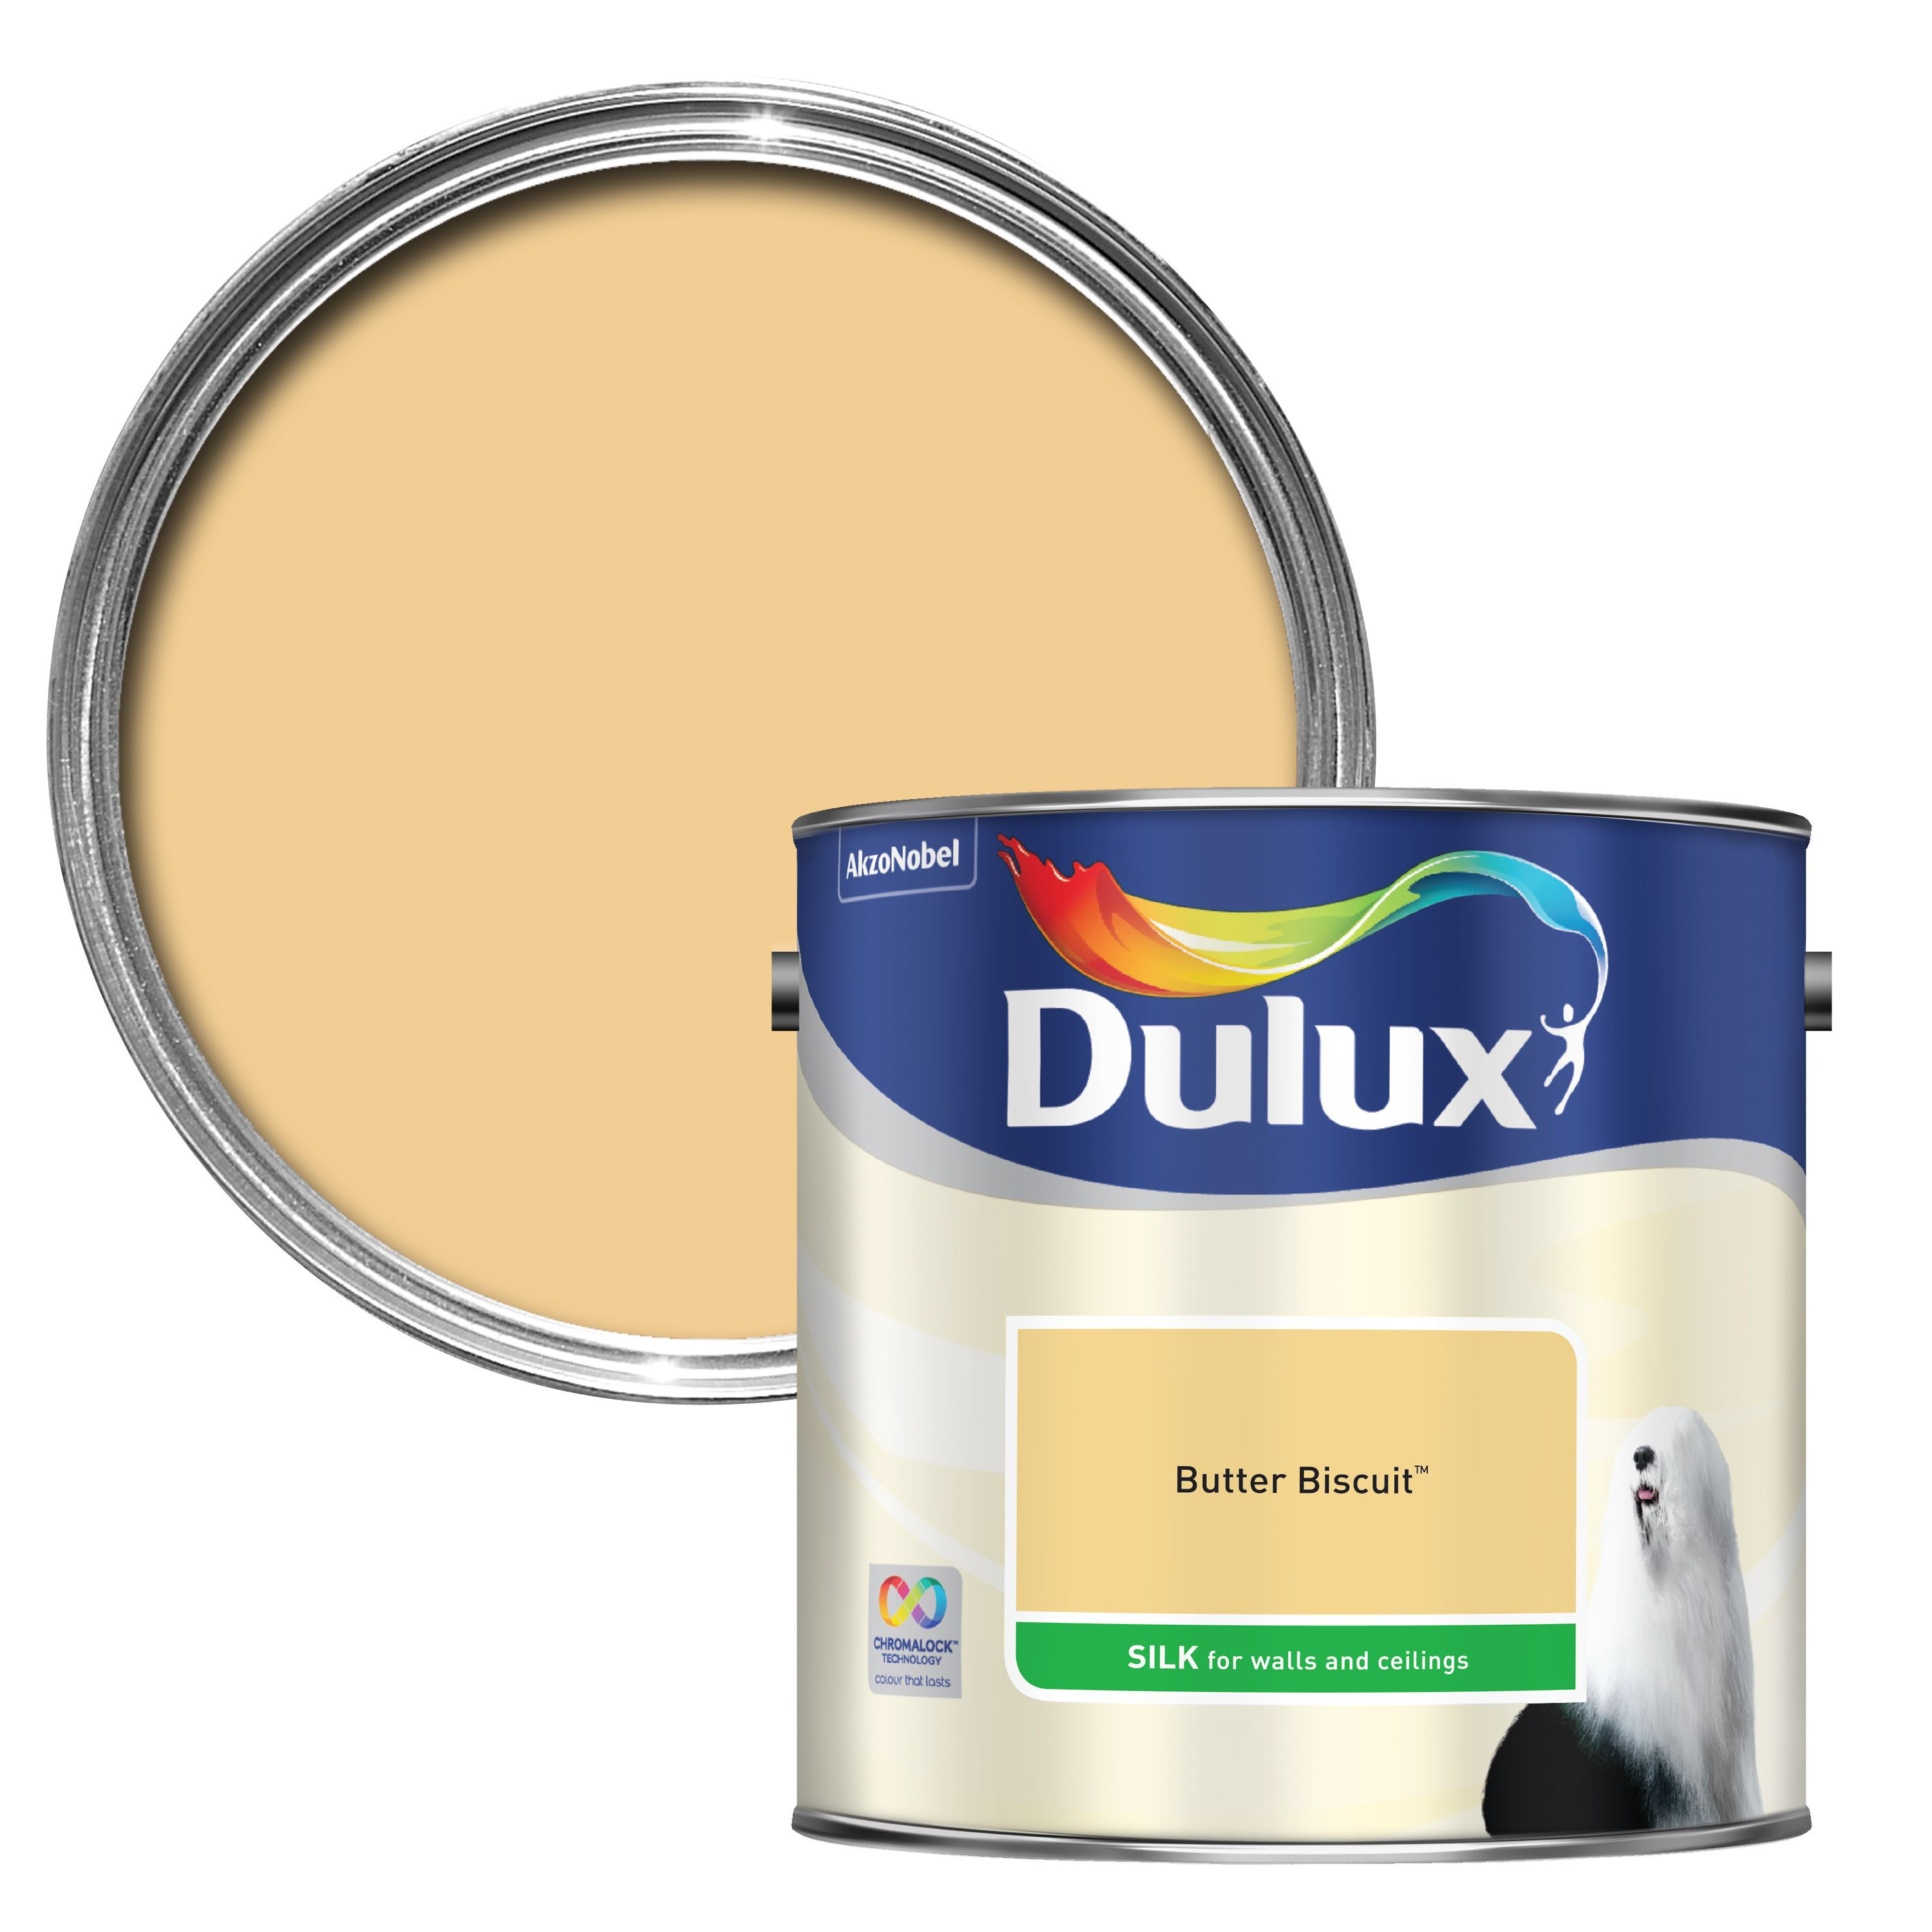 Dulux Standard Butter Biscuit Silk Wall & Ceiling Paint 2.5l